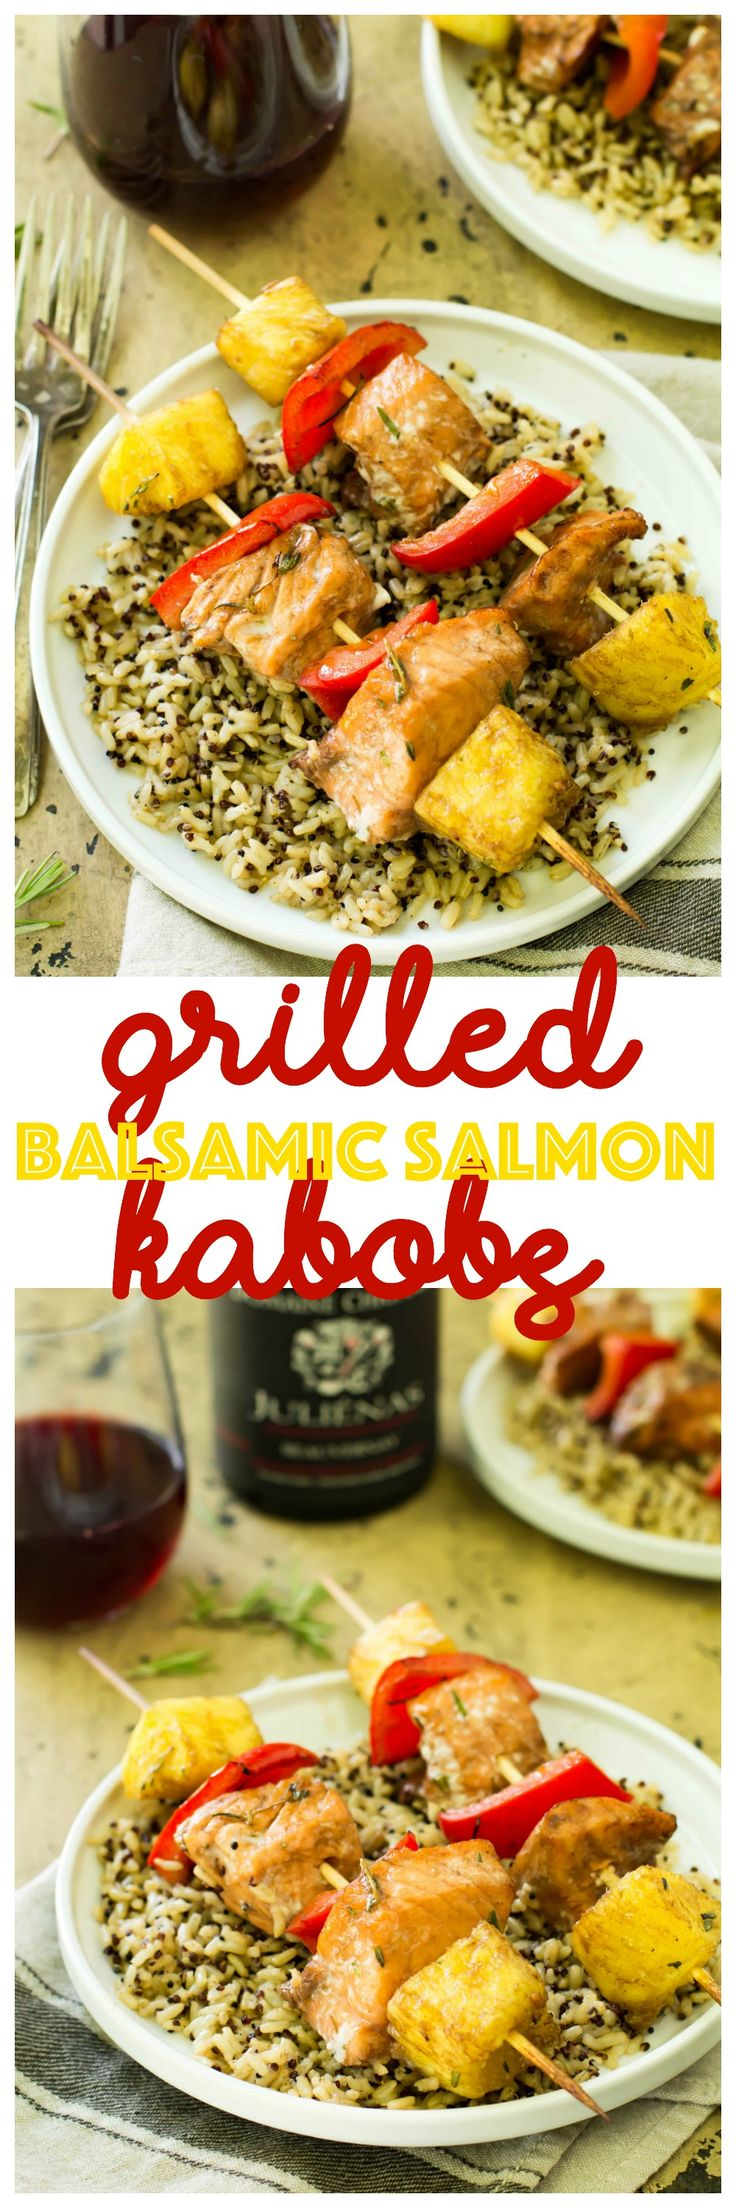 These salmon kabobs are easy to make, hearty, light and healthy. And they're packed with vibrant flavors! #BYOBojo #21andup #ad